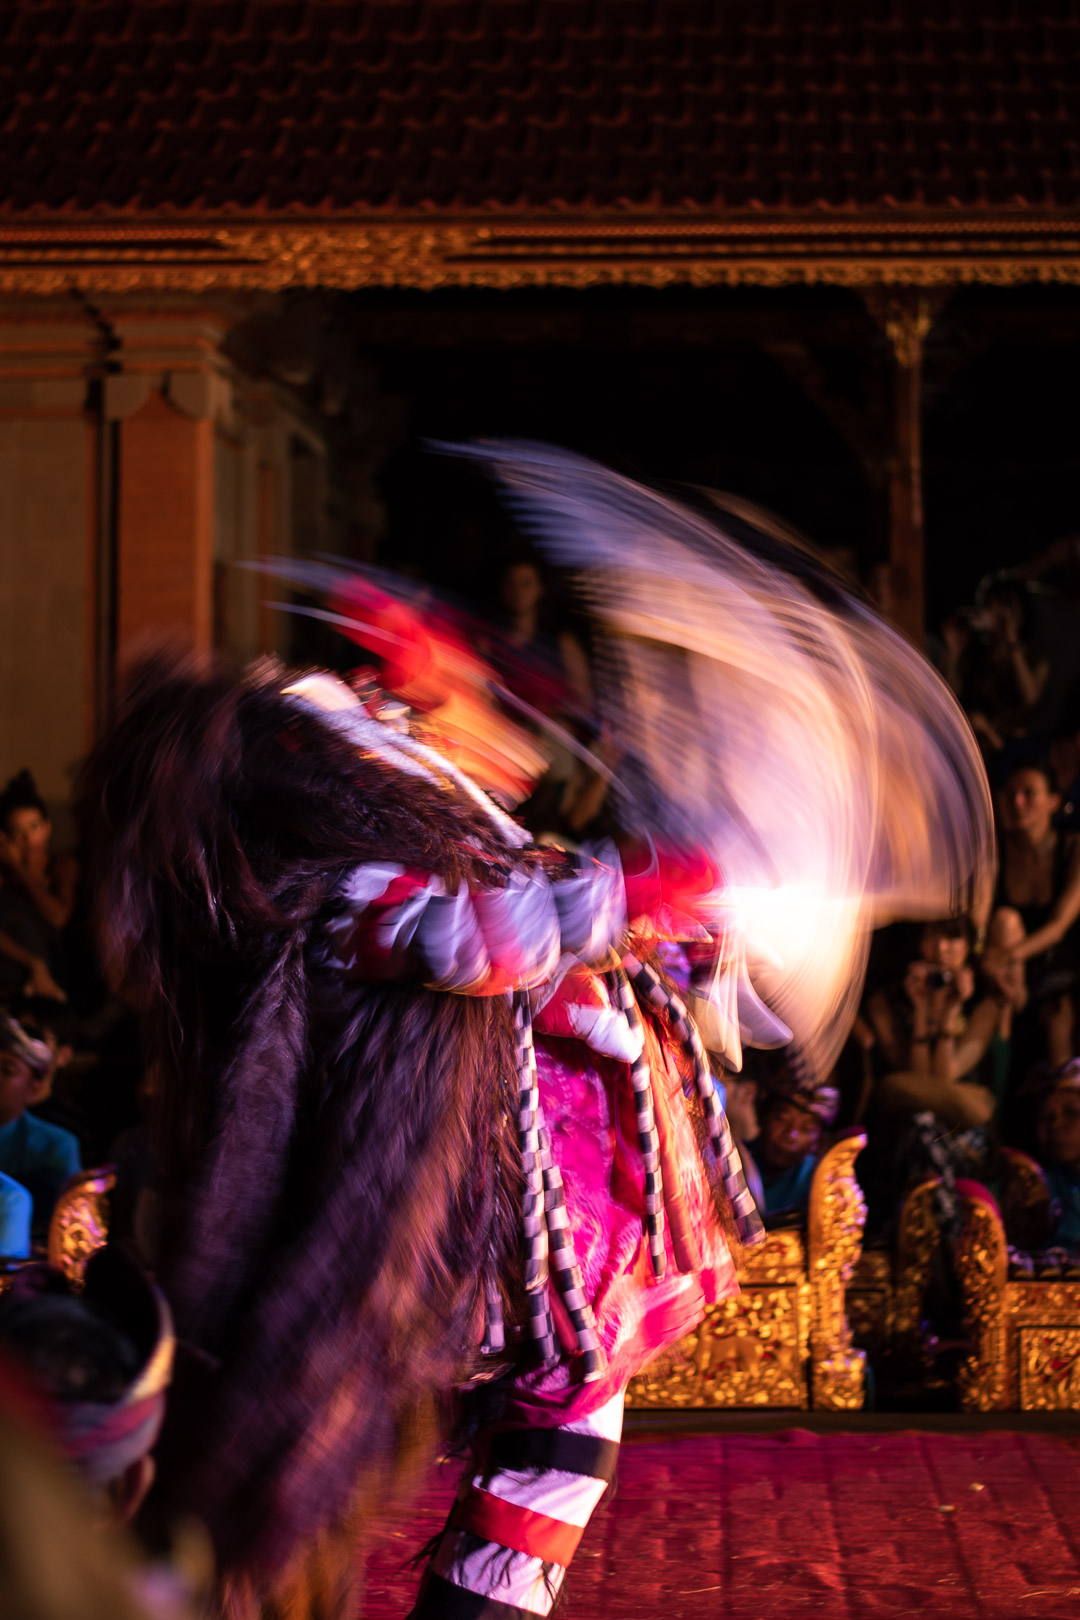 Using a slow shutter speed to capture the movement of the Balinese dancers.